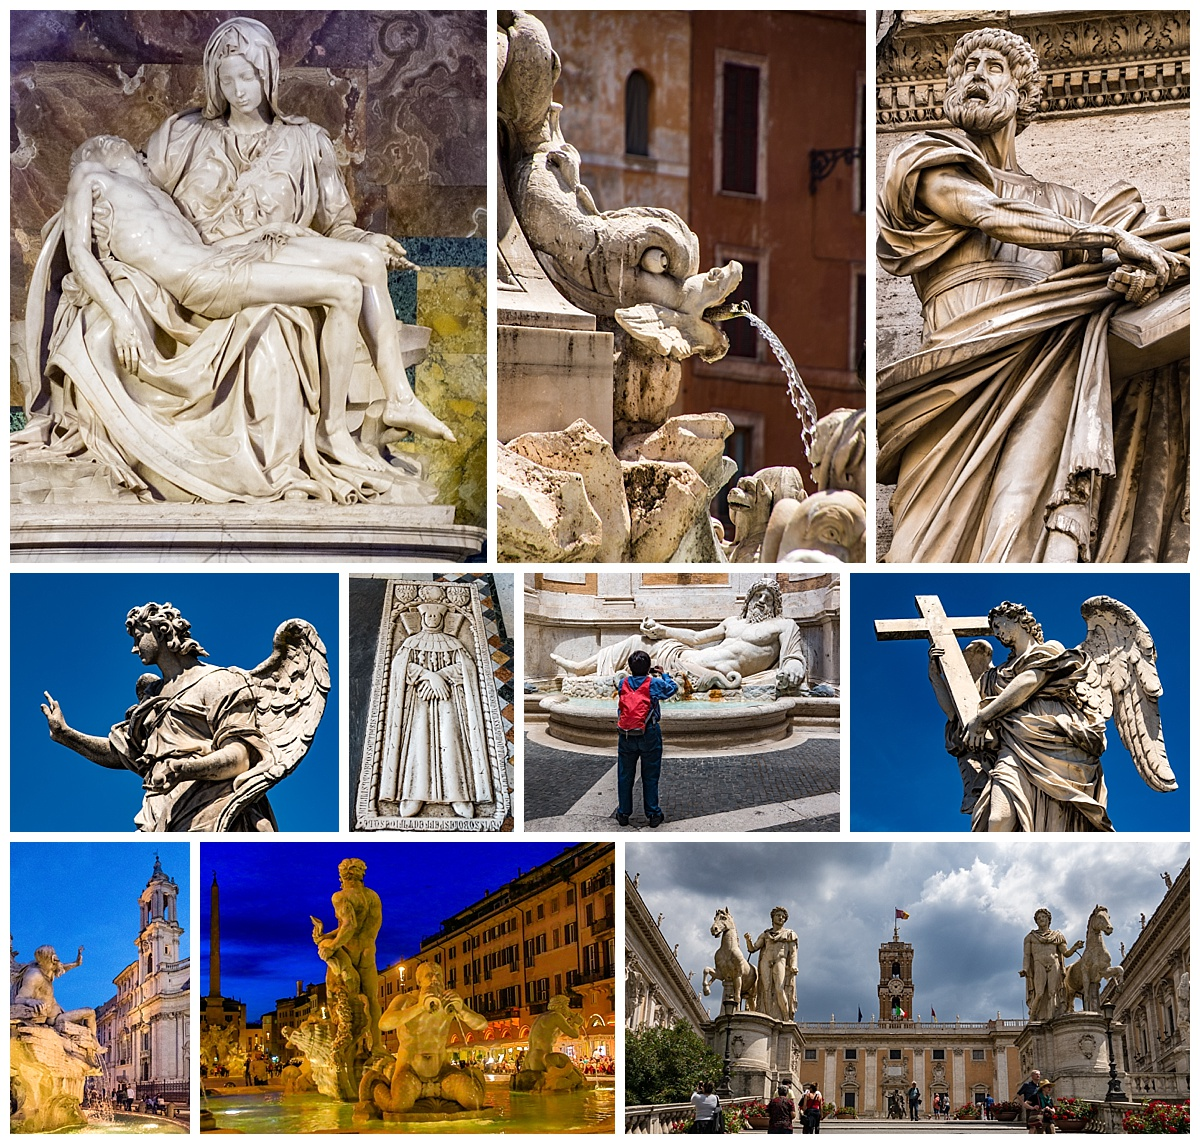 Rome, Italy - statues